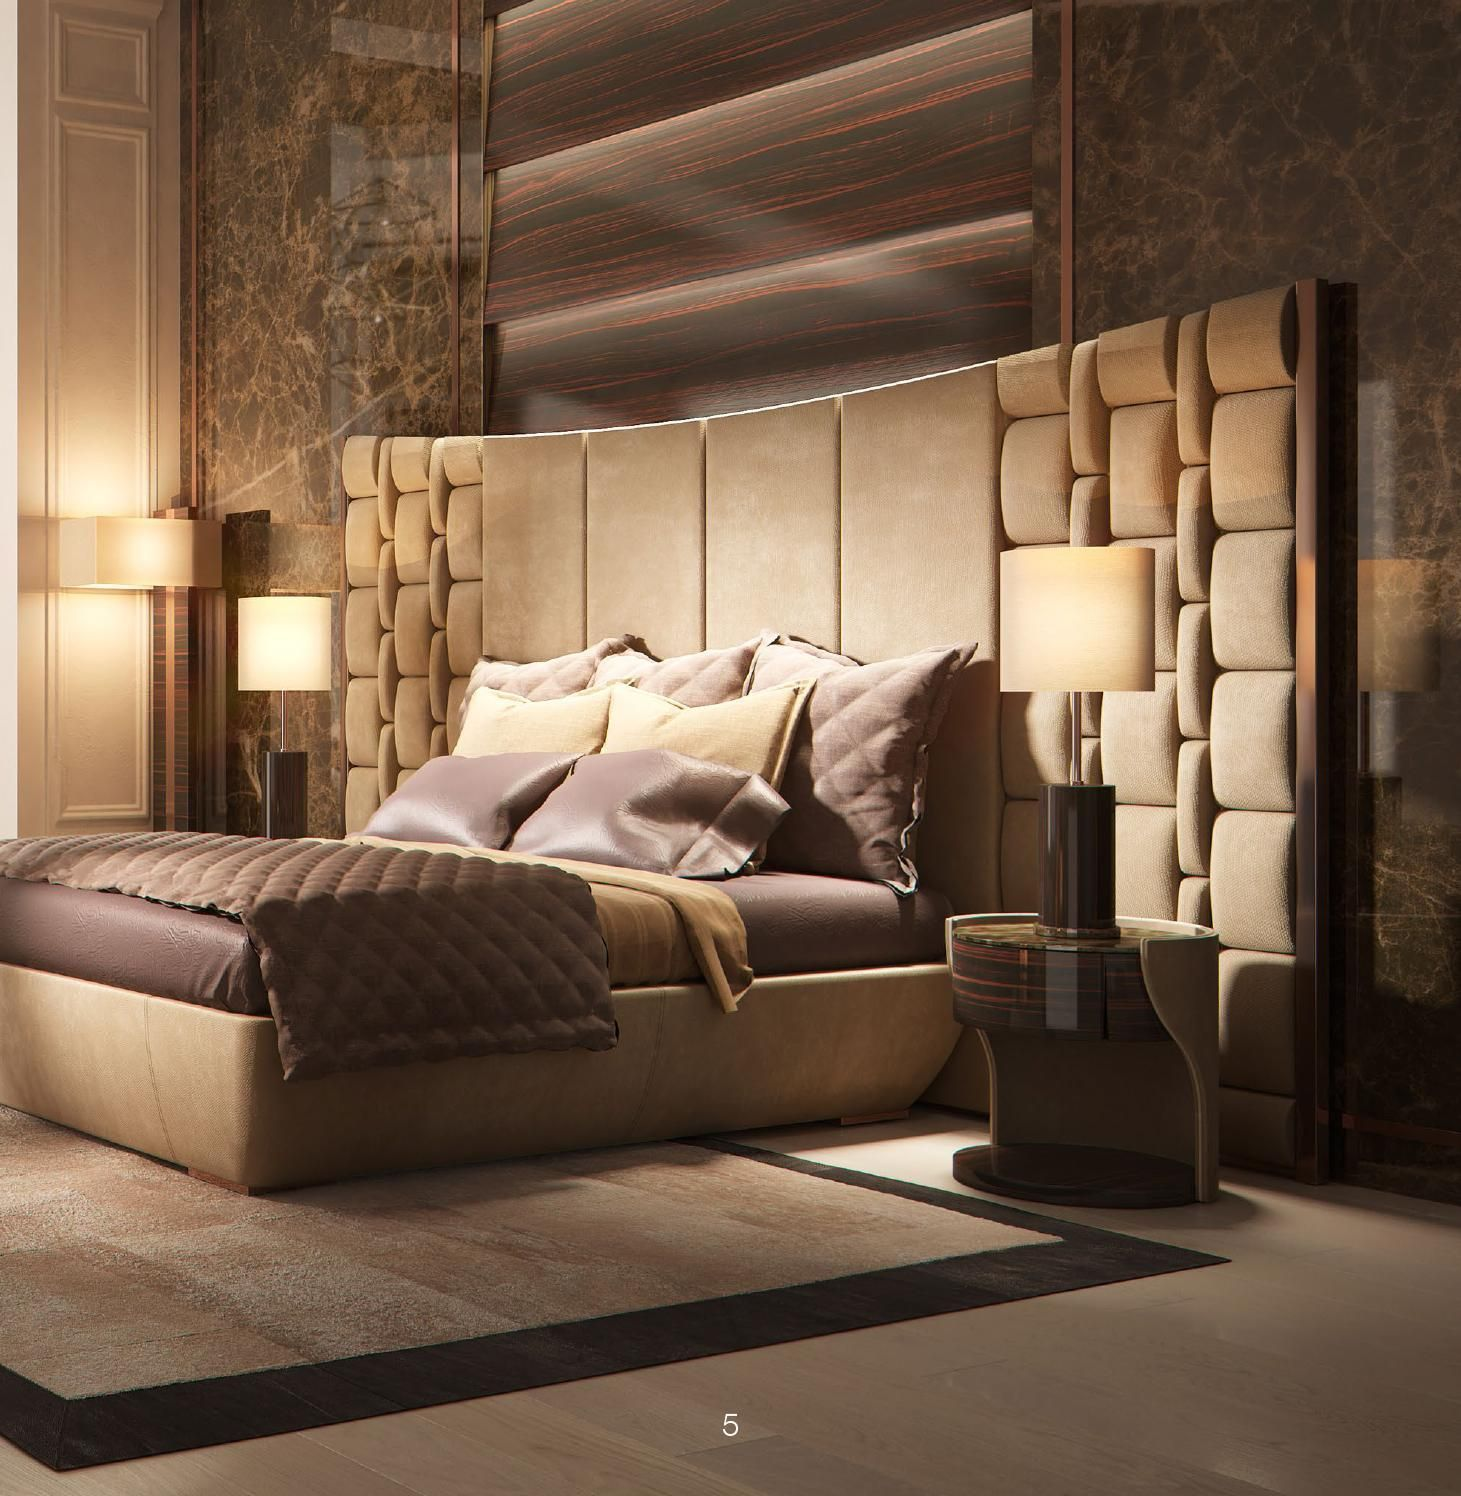 Juliettes Interiors Brochure 2016 The Latest In Luxury Furniture Lighting Mirrors And Access Luxurious Bedrooms Latest Bedroom Design Luxury Bedroom Design